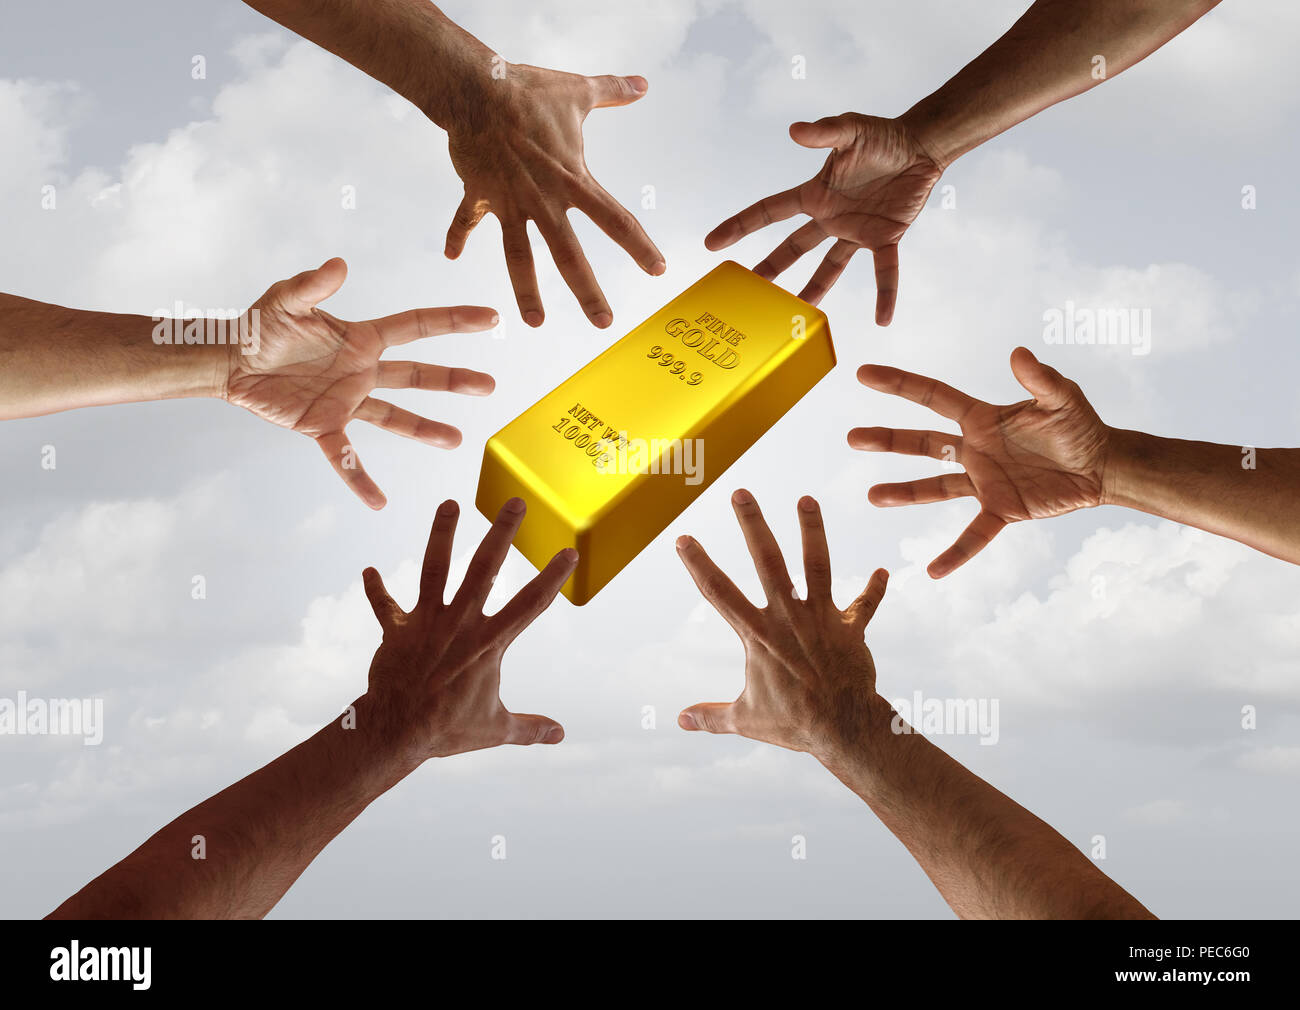 Gold demand and global commodity investment financial and business trade concept as diverse hands reaching for a golden bar. - Stock Image